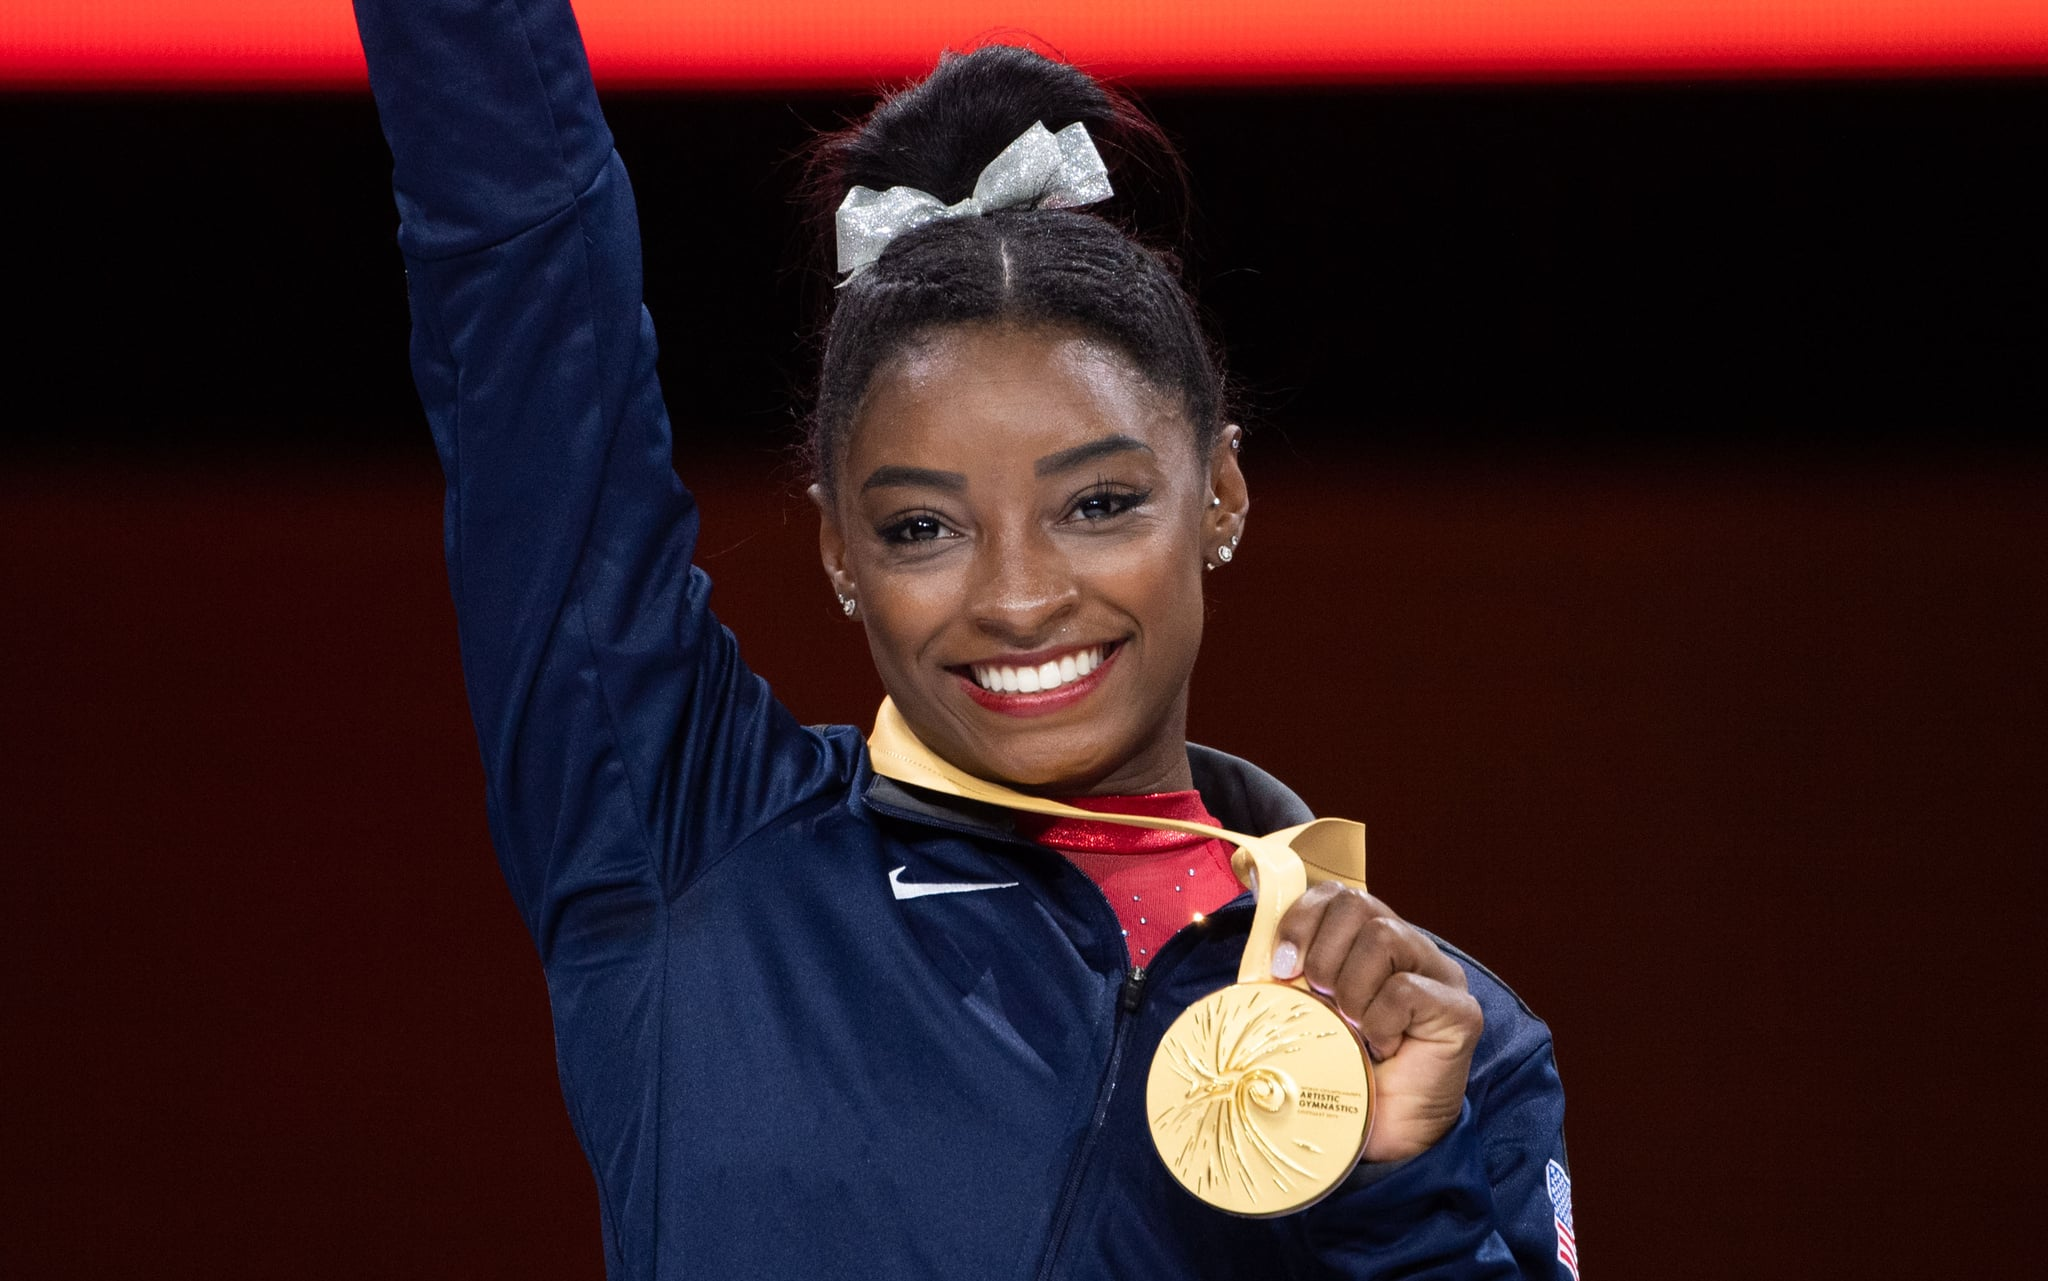 12 October 2019, Baden-Wuerttemberg, Stuttgart: Gymnastics: world championship, jump, final, women: Simone Biles from the USA at the award ceremony with the gold medal Photo: Marijan Murat/dpa (Photo by Marijan Murat/picture alliance via Getty Images)